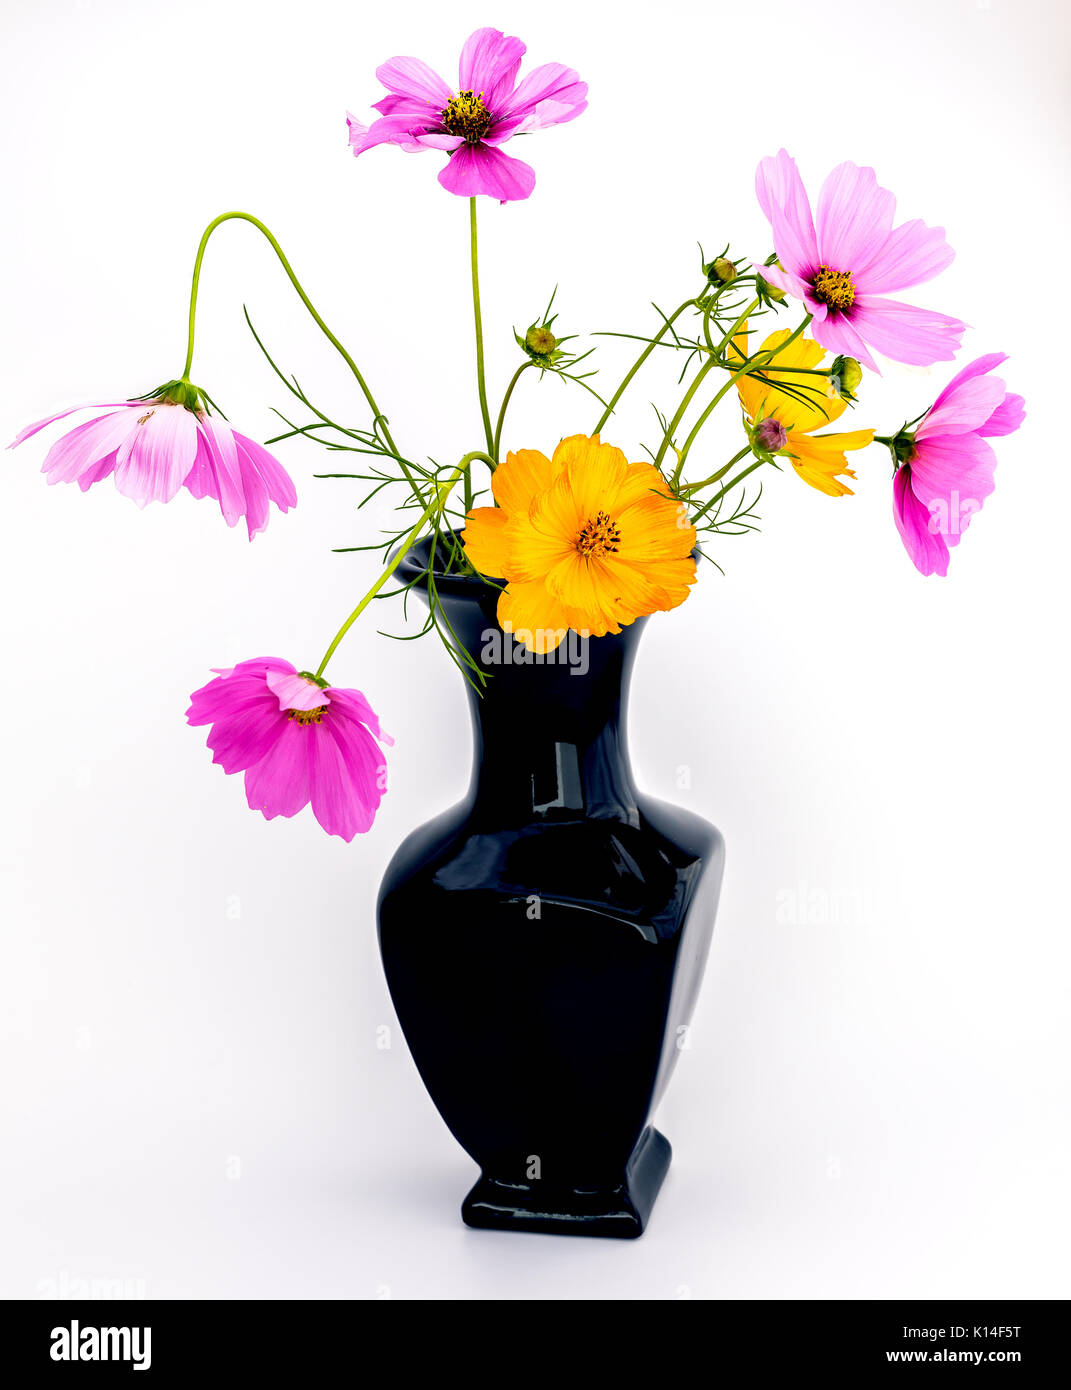 Garden flowers on black background stock photos garden flowers black vase with a bouquet of purple and orange wild flowers isolated on a white background reviewsmspy